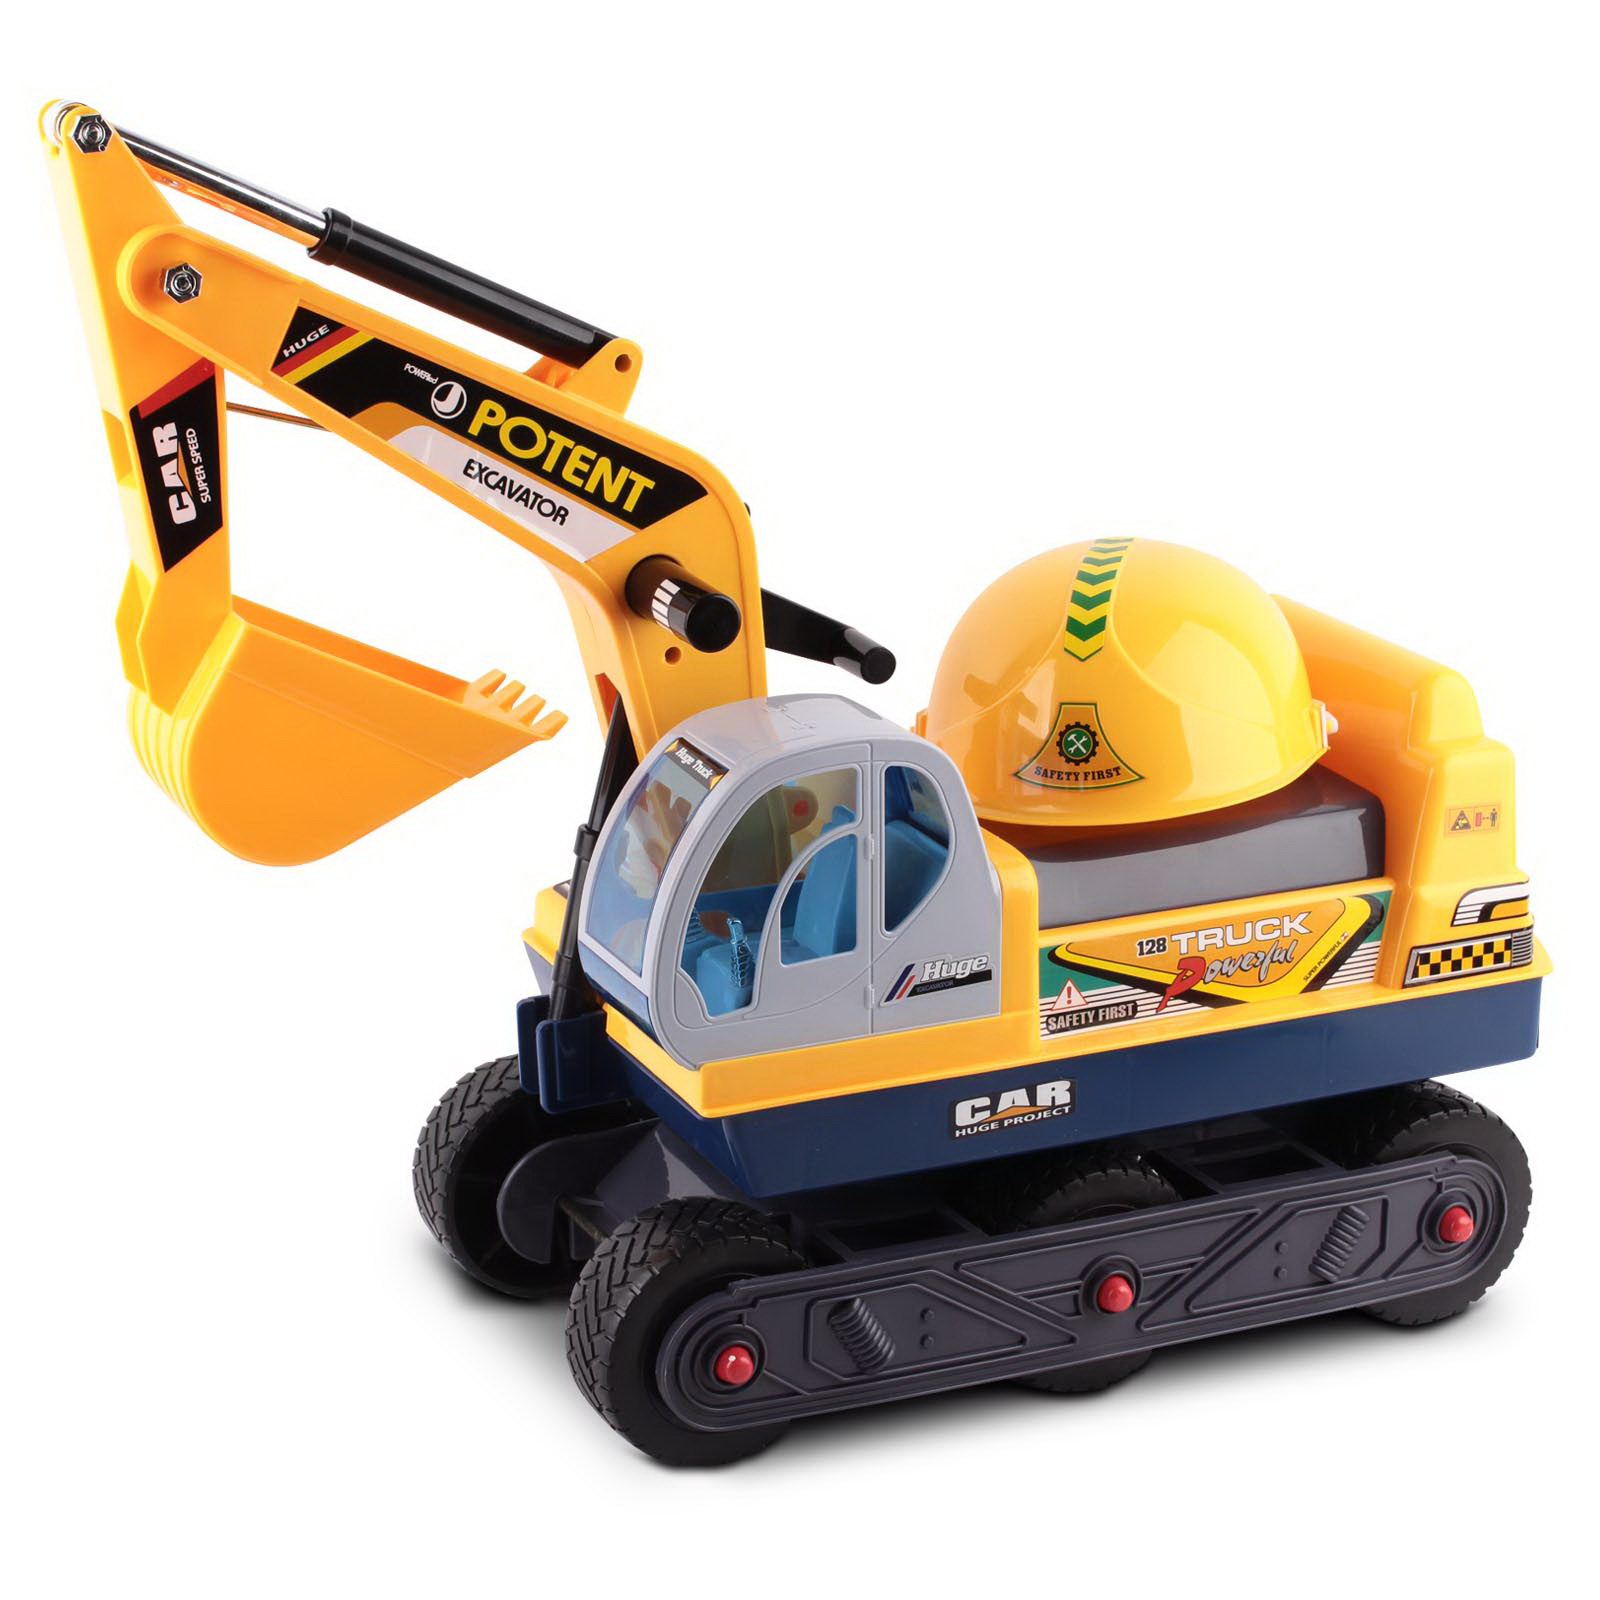 Brand New Keezi Kids Ride On Excavator – Yellow Fast Free Shipping